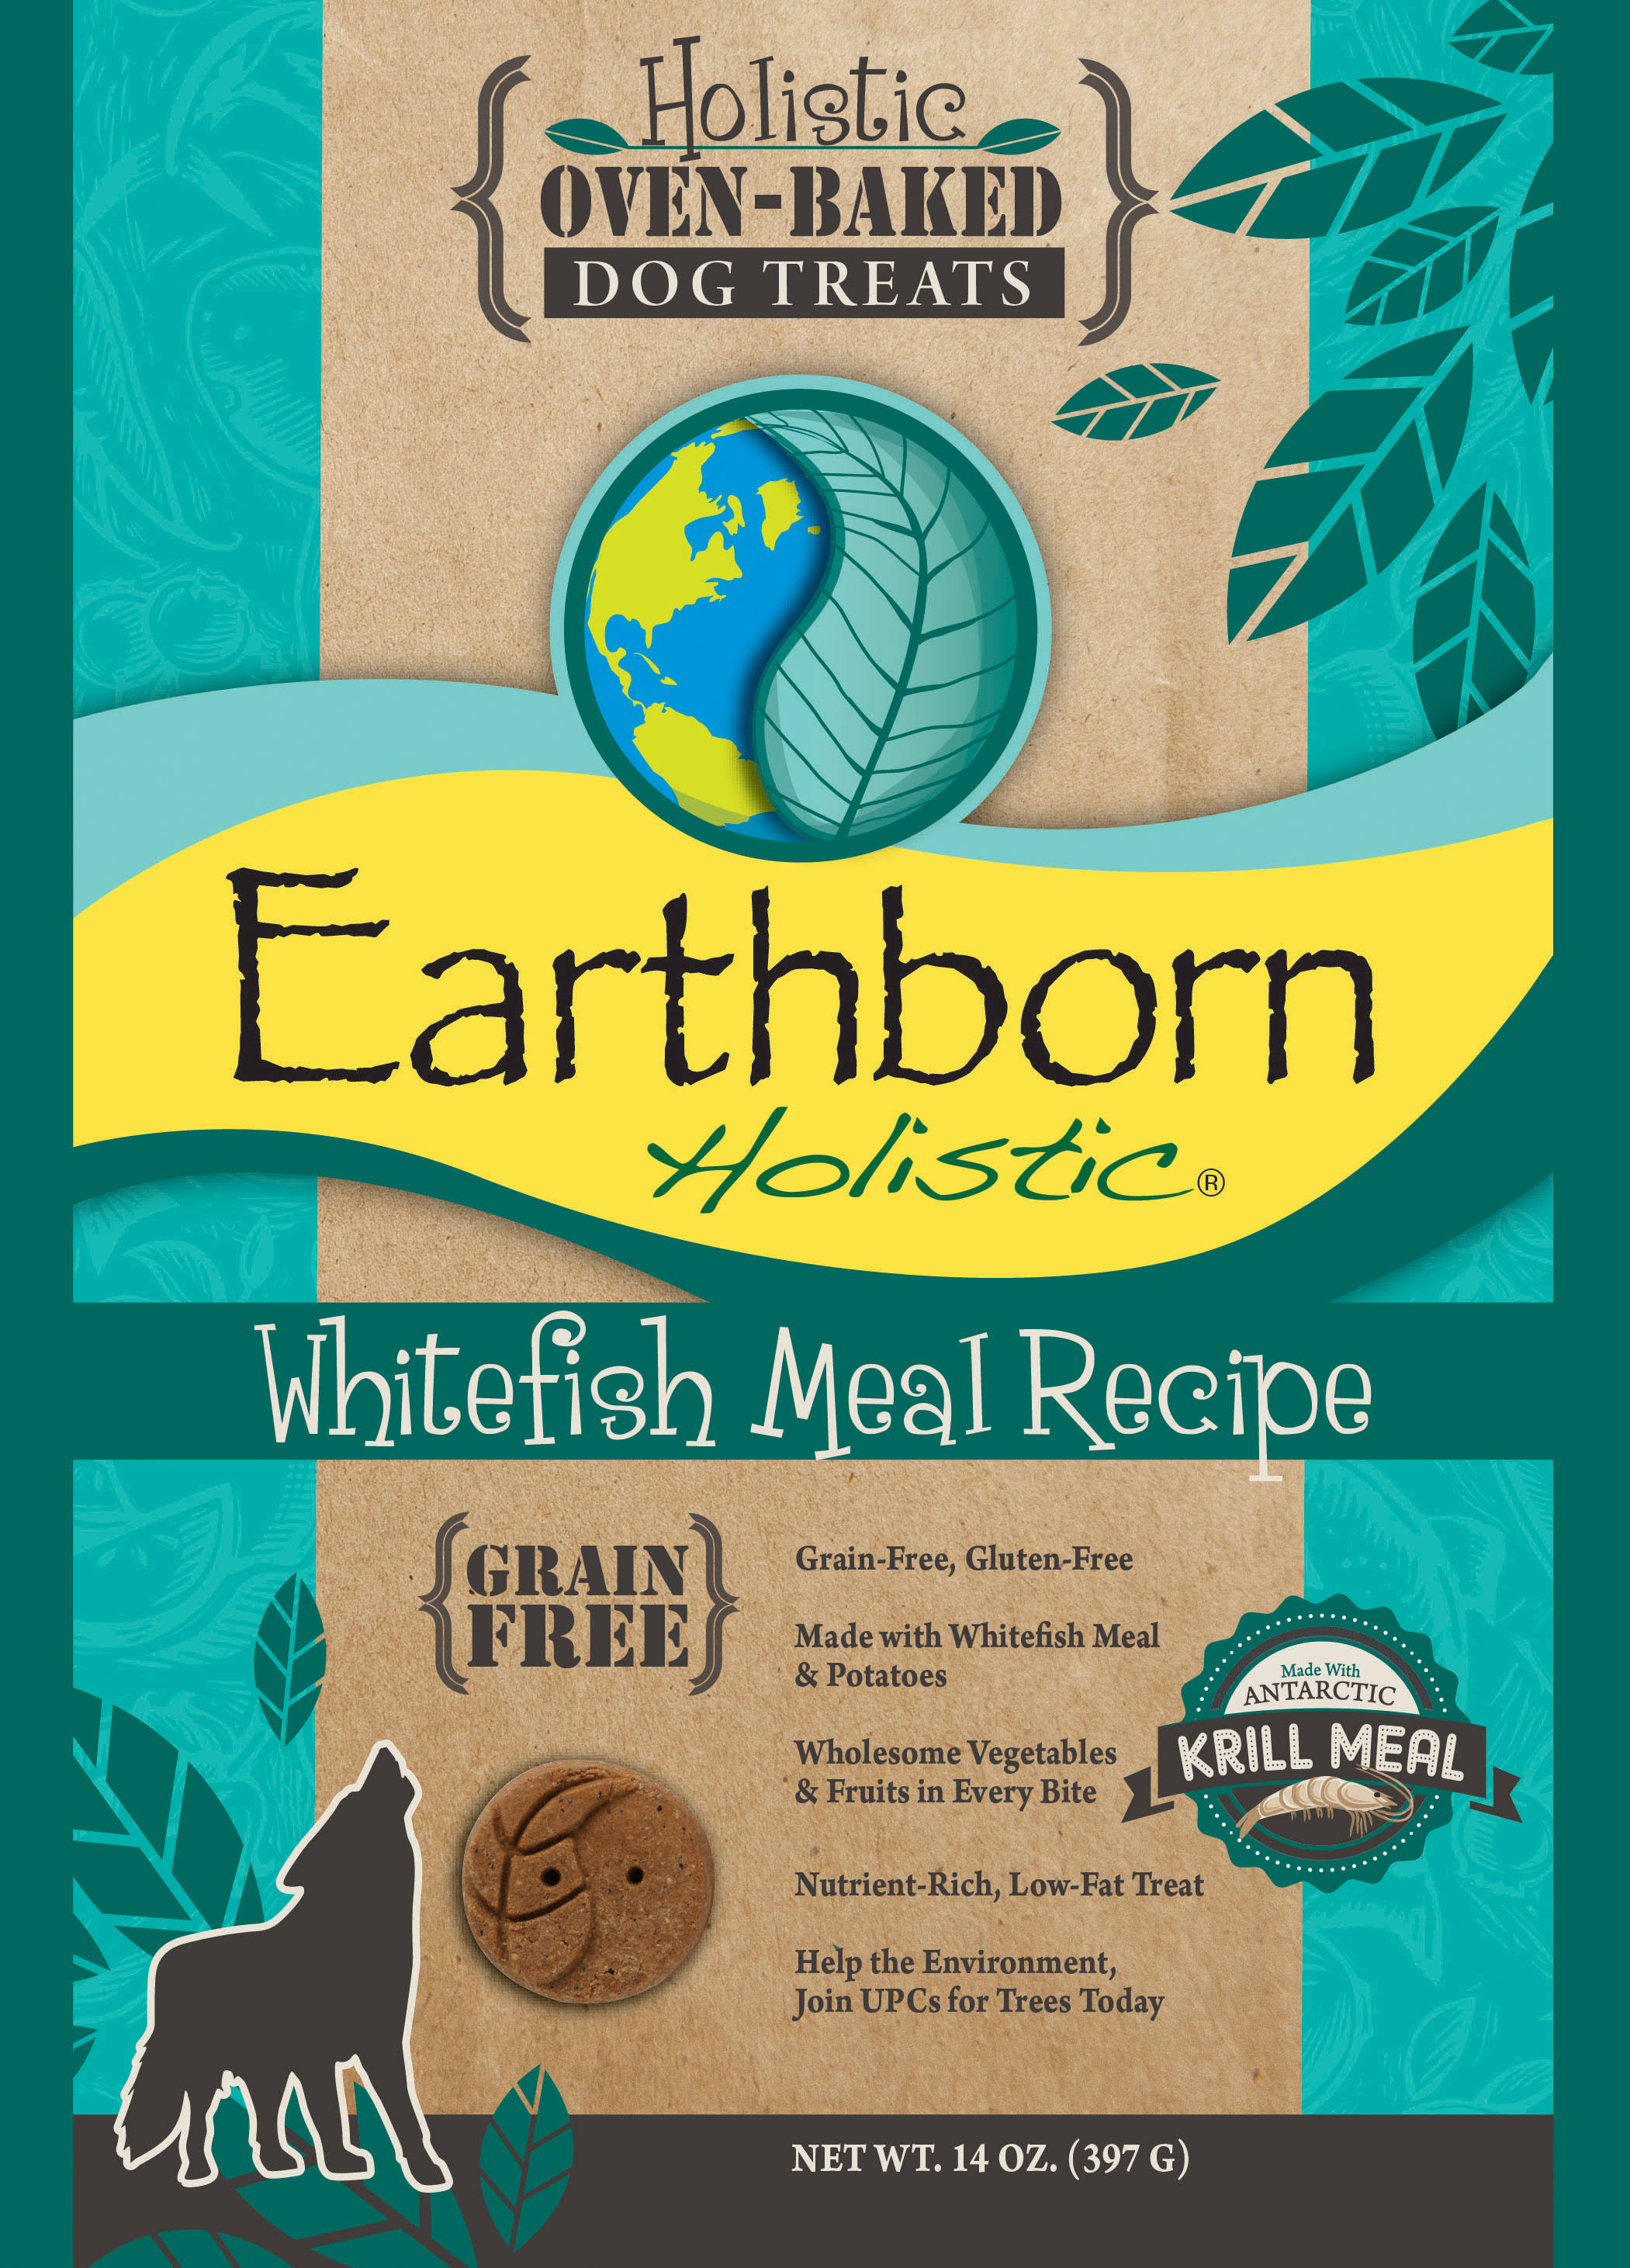 Earthborn Holistic Pet Biscuits - Whitefish Meal